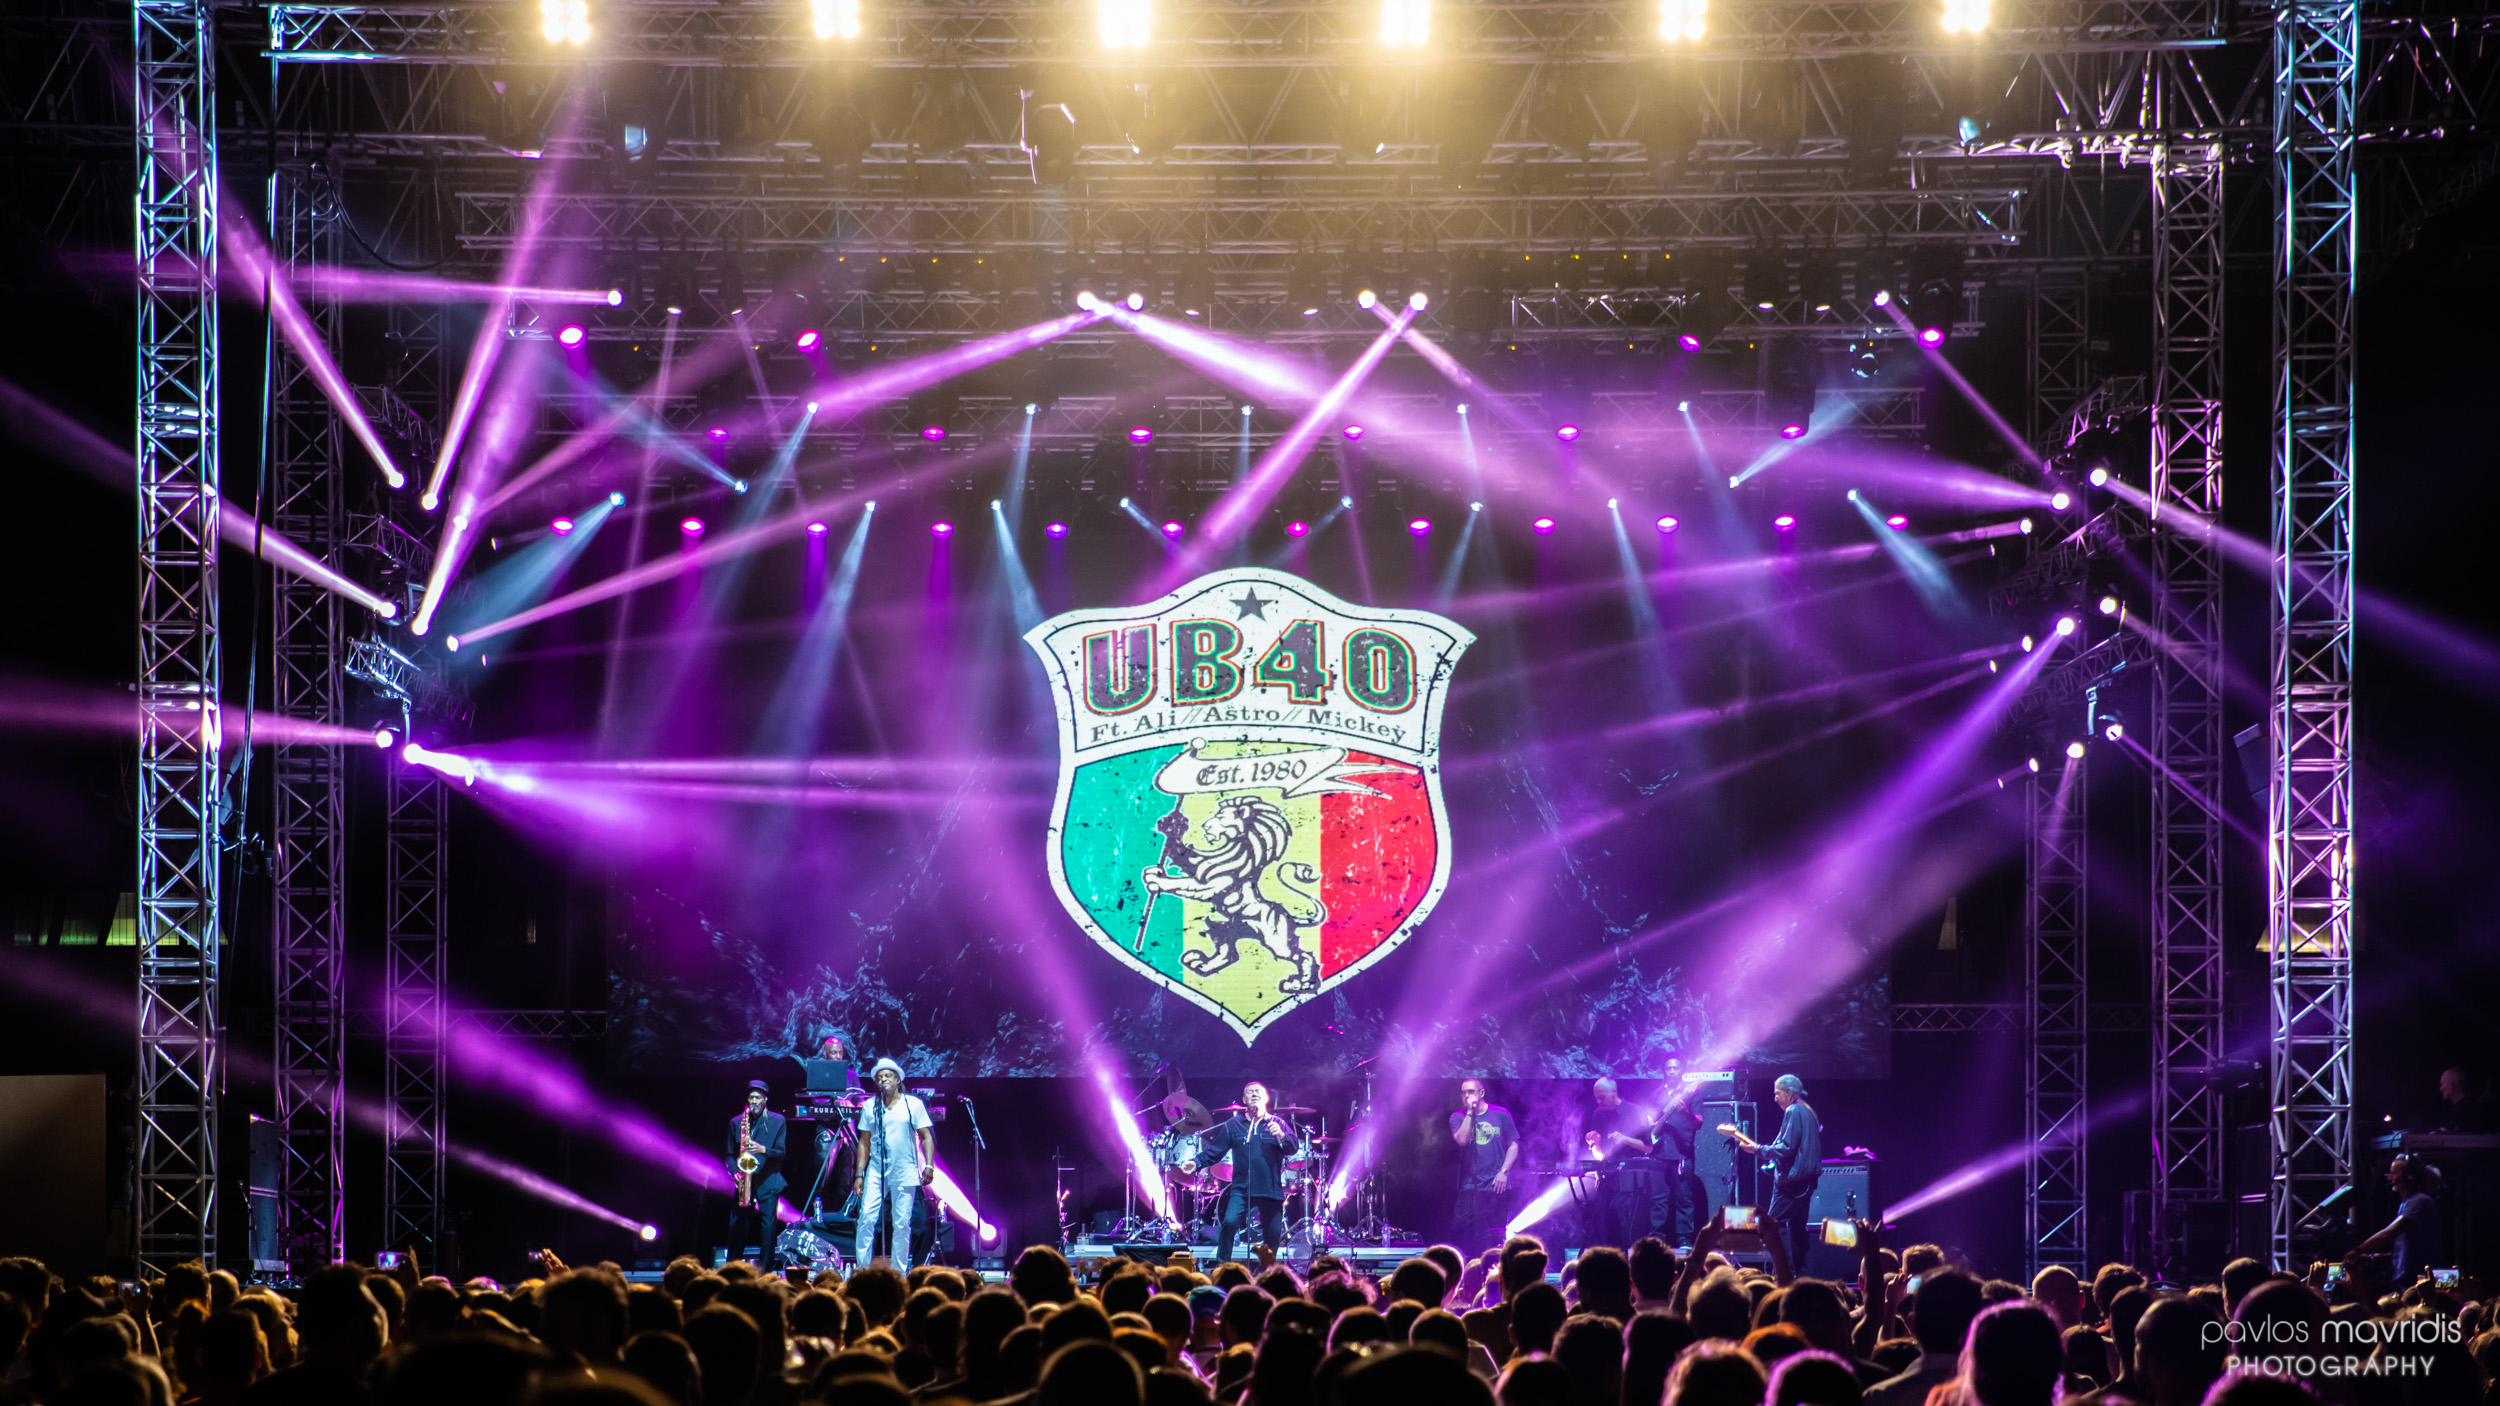 UB40 feat. Ali, Astro, Mickey_Release Athens Festival 2018_02_hires_web.jpg